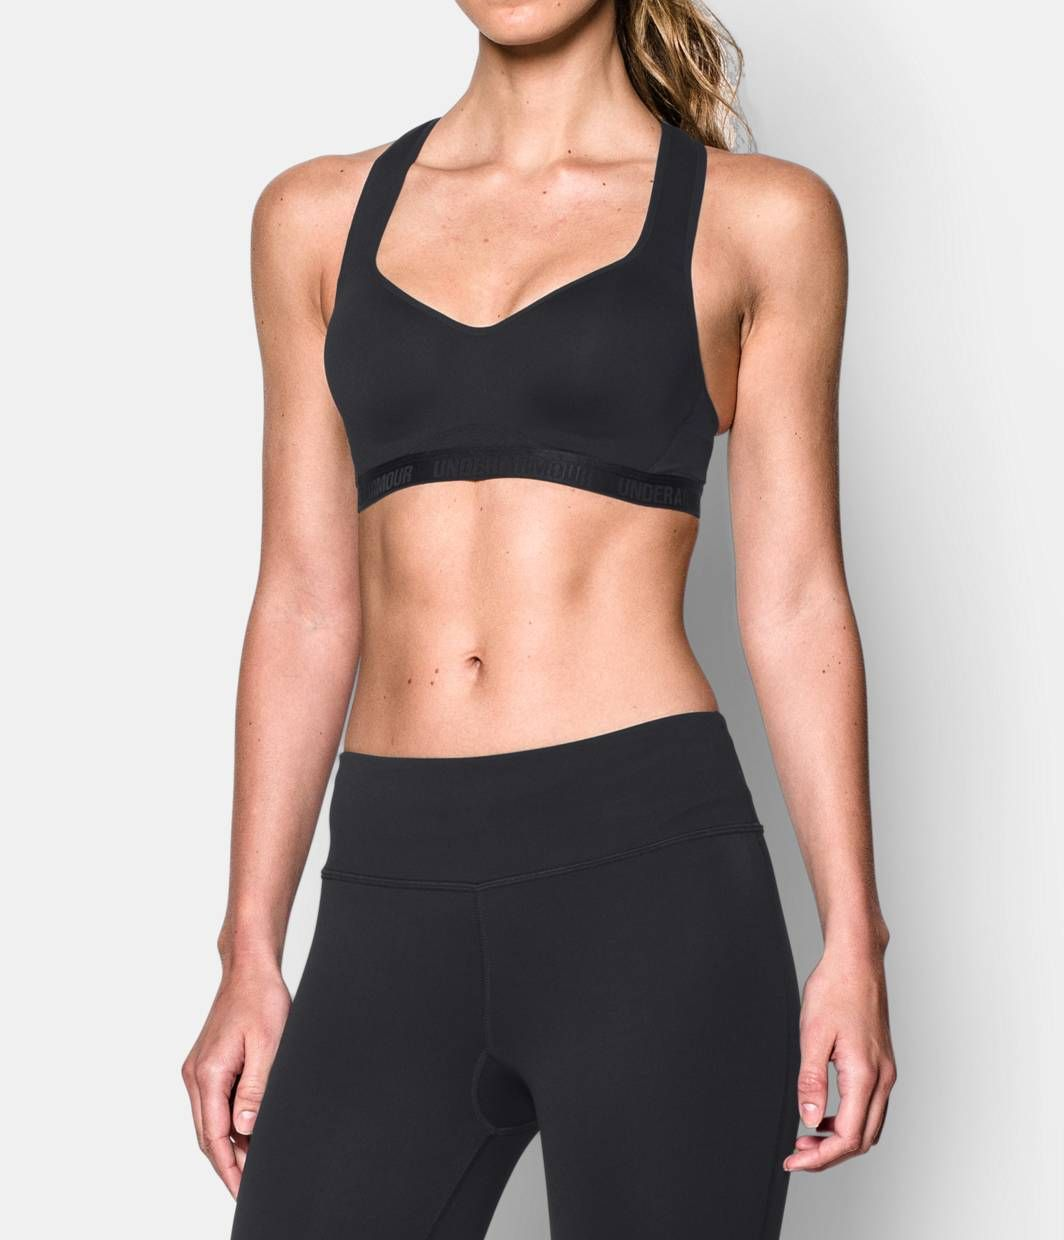 6a56970d75 Shop Under Armour for Women s UA Armour High Bra in our Womens Bras  department. Free